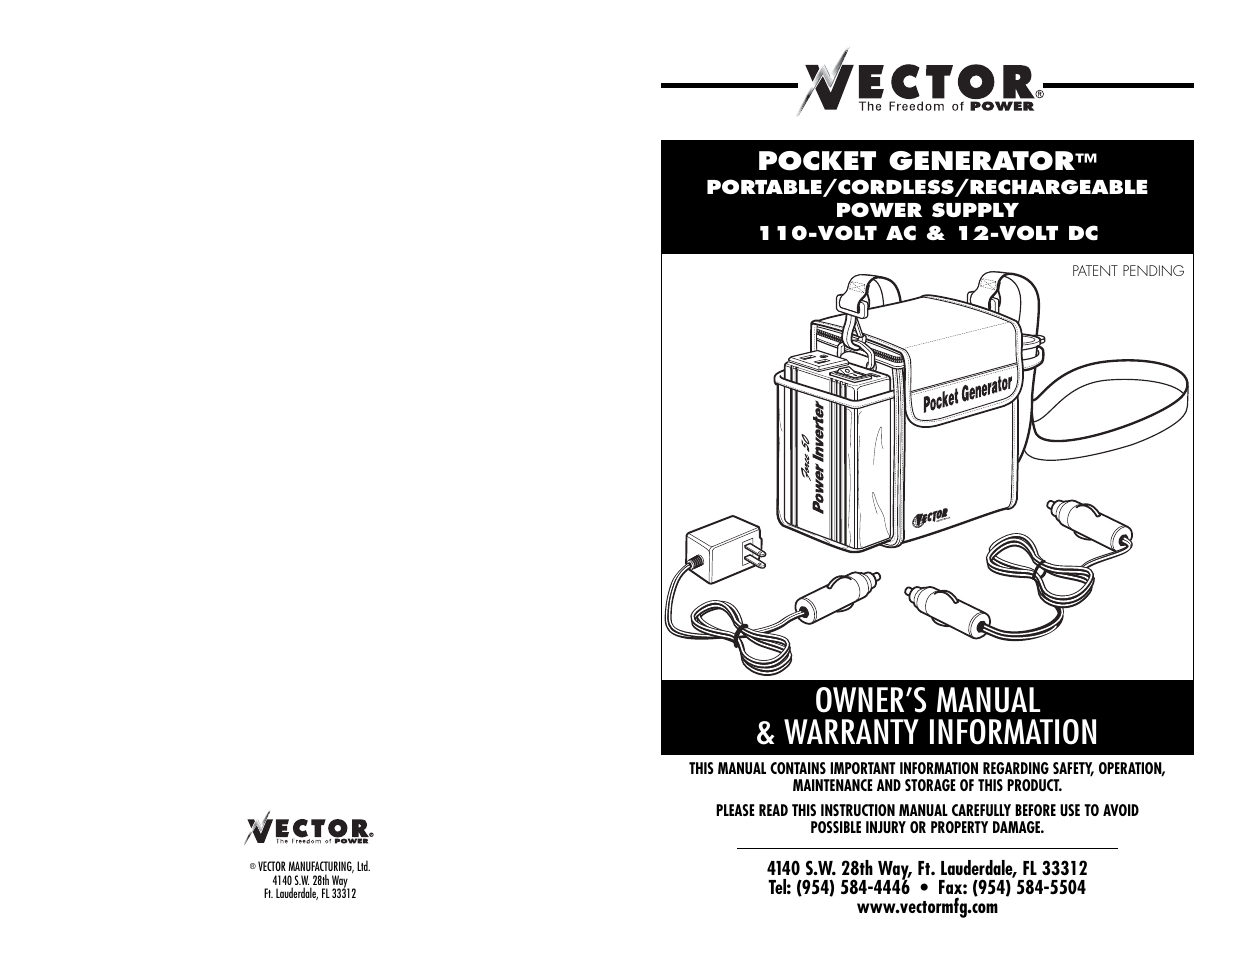 Vector pocket generator vec018 user manual 8 pages publicscrutiny Image collections